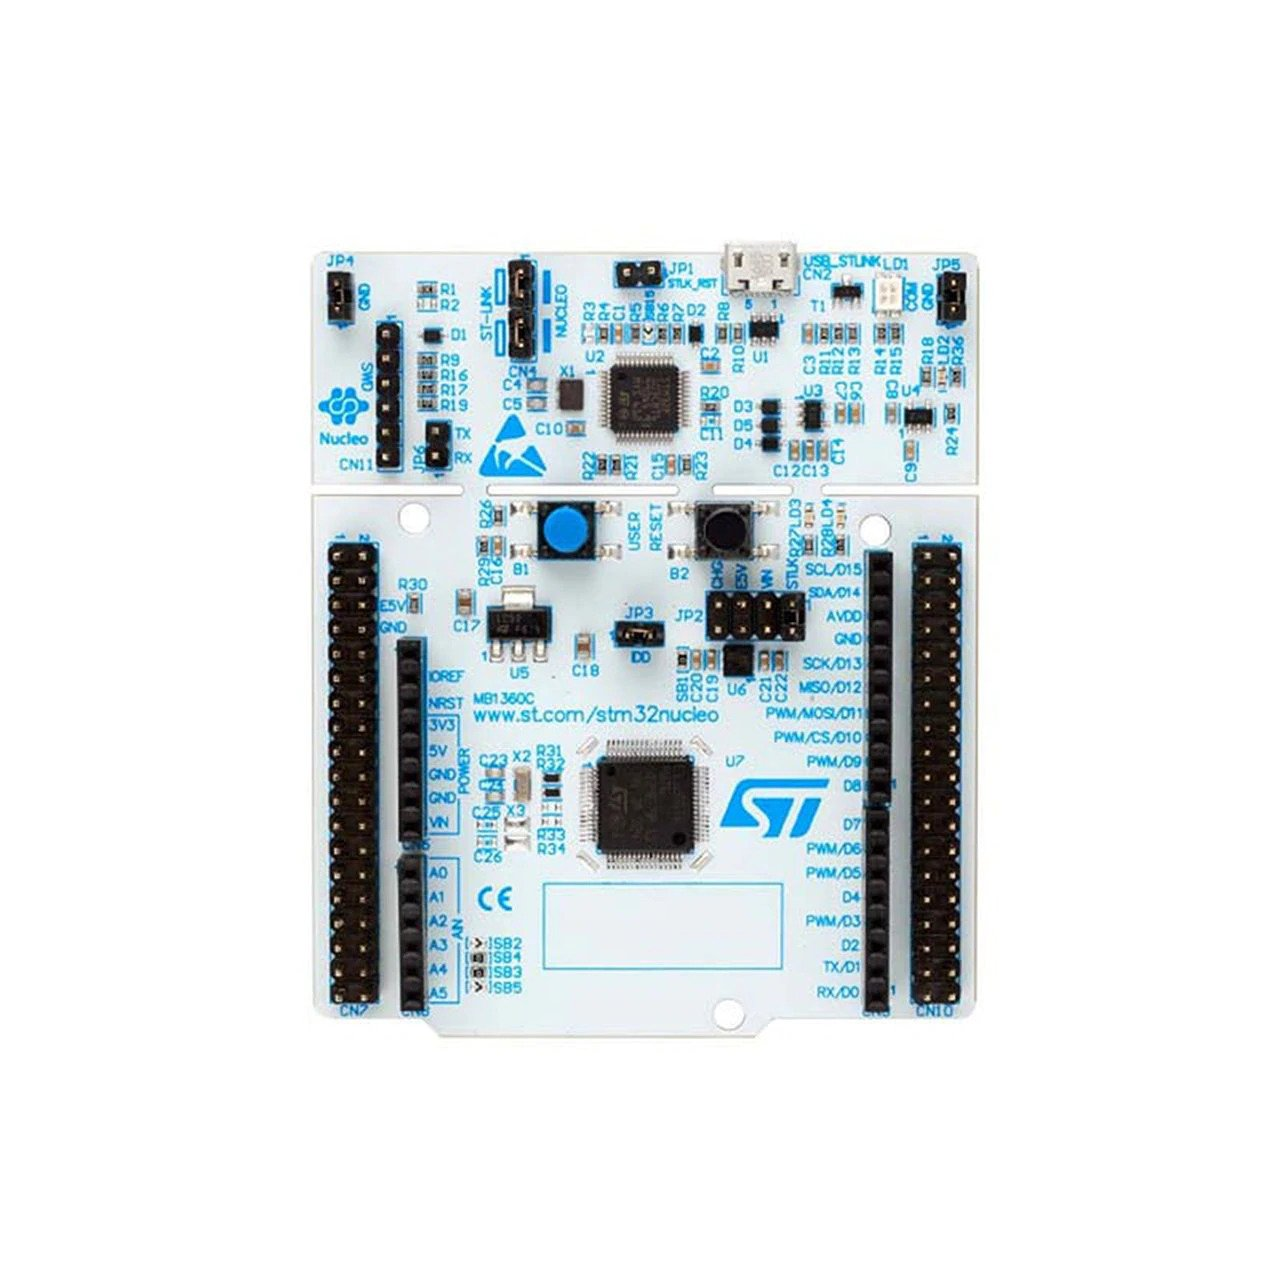 NUCLEO-64 STM32G071RBT6  Development Board Arduino & ST Morpho Connectivity